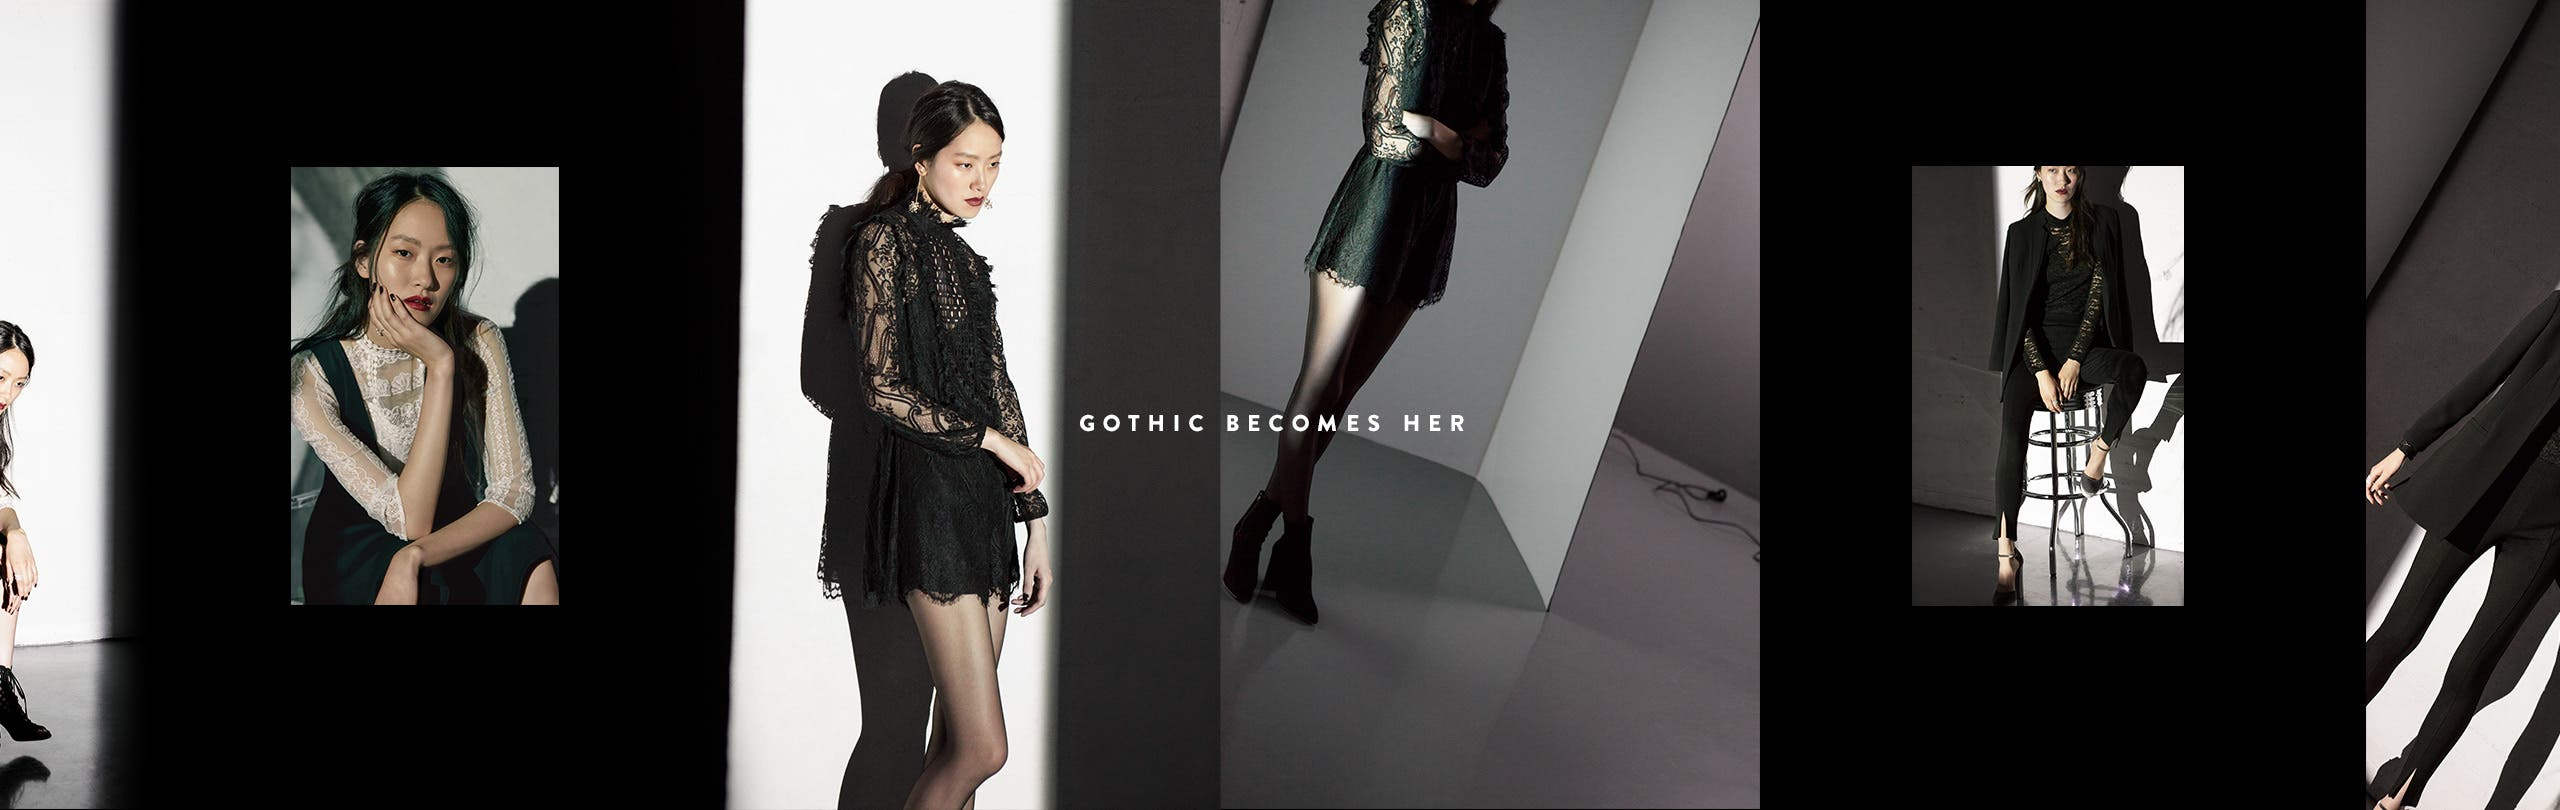 Gothic-inspired clothing, shoes and accessories.